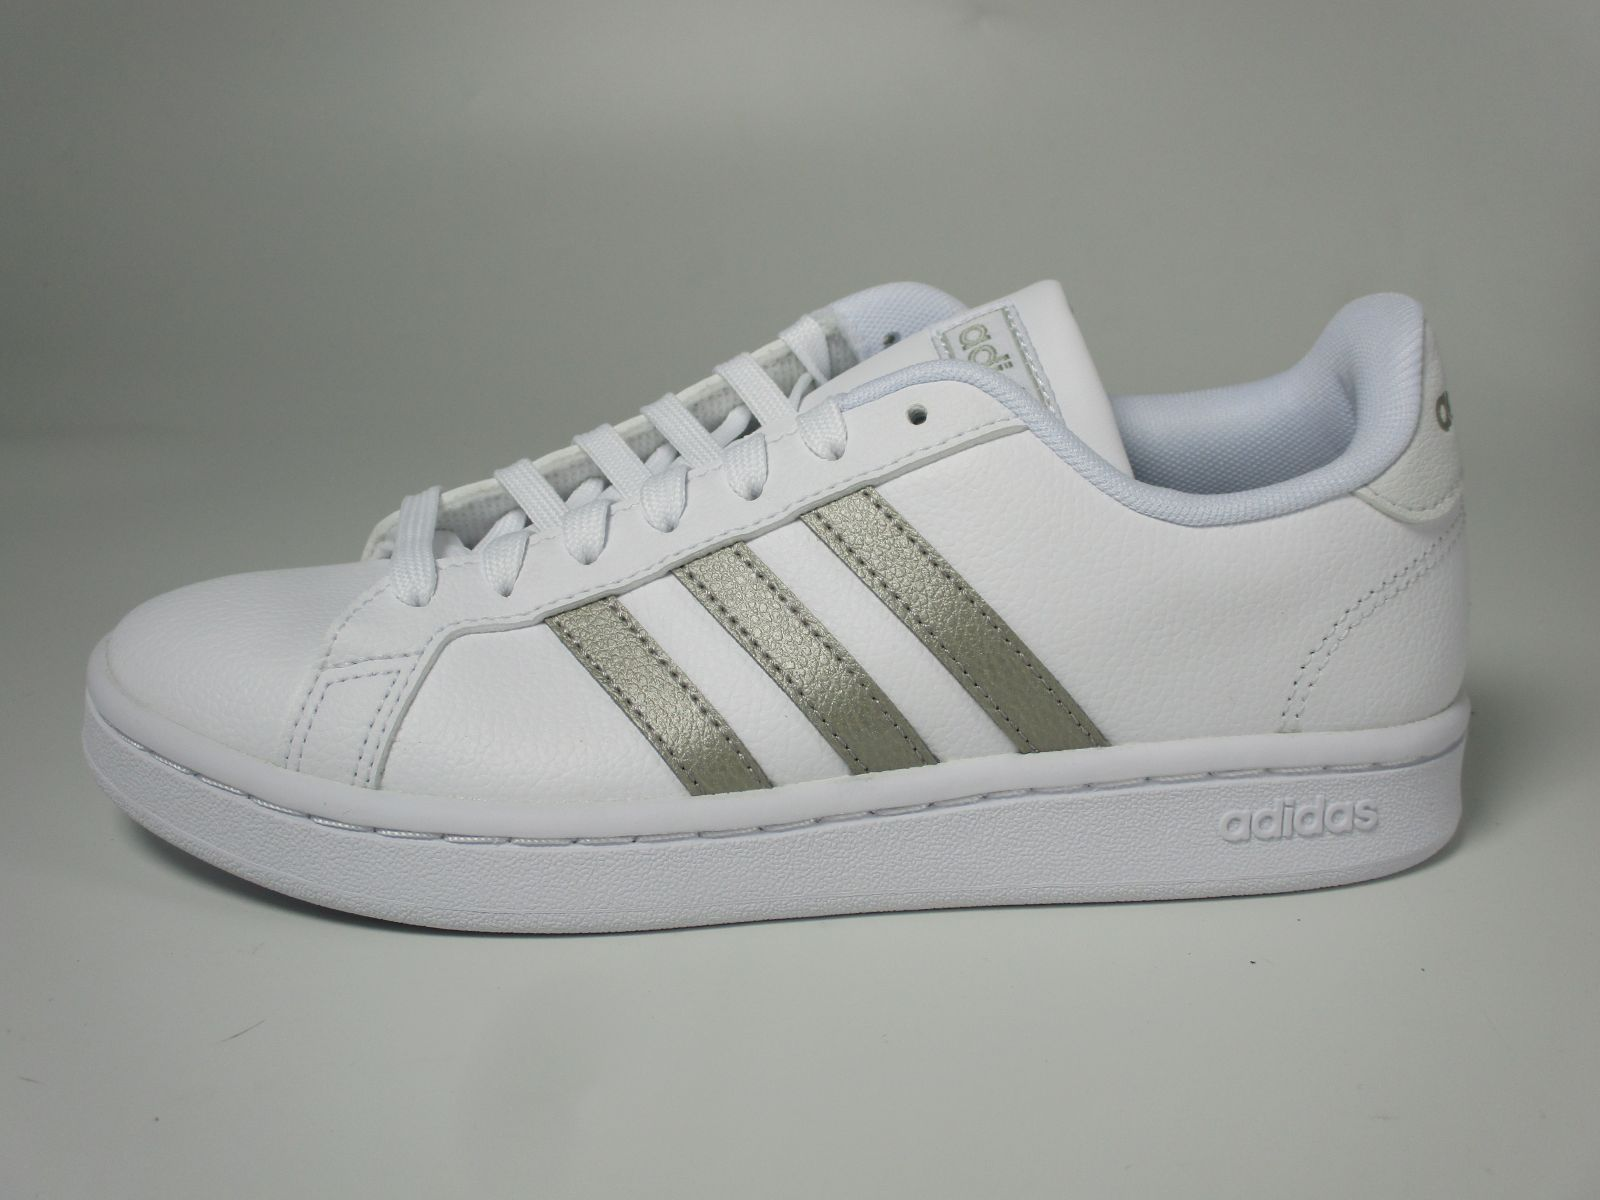 Adidas Basket Blanc/Or dames (Grand Court - F36485) - Marques à Suivre